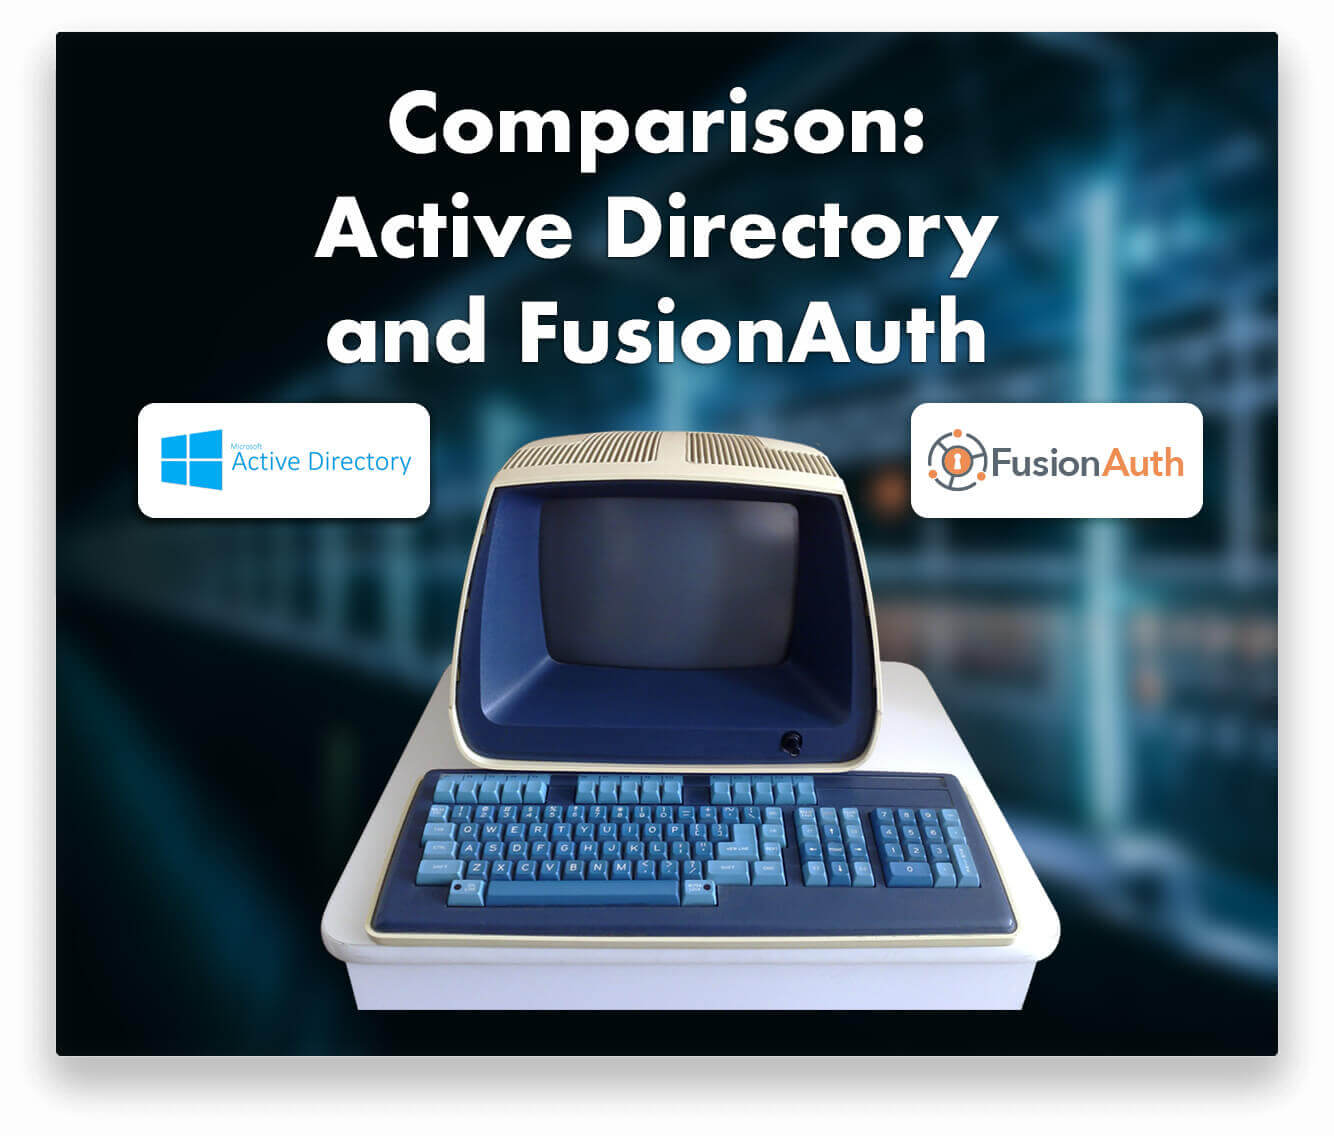 Compare FusionAuth and Active Directory for your identity and access management solution.